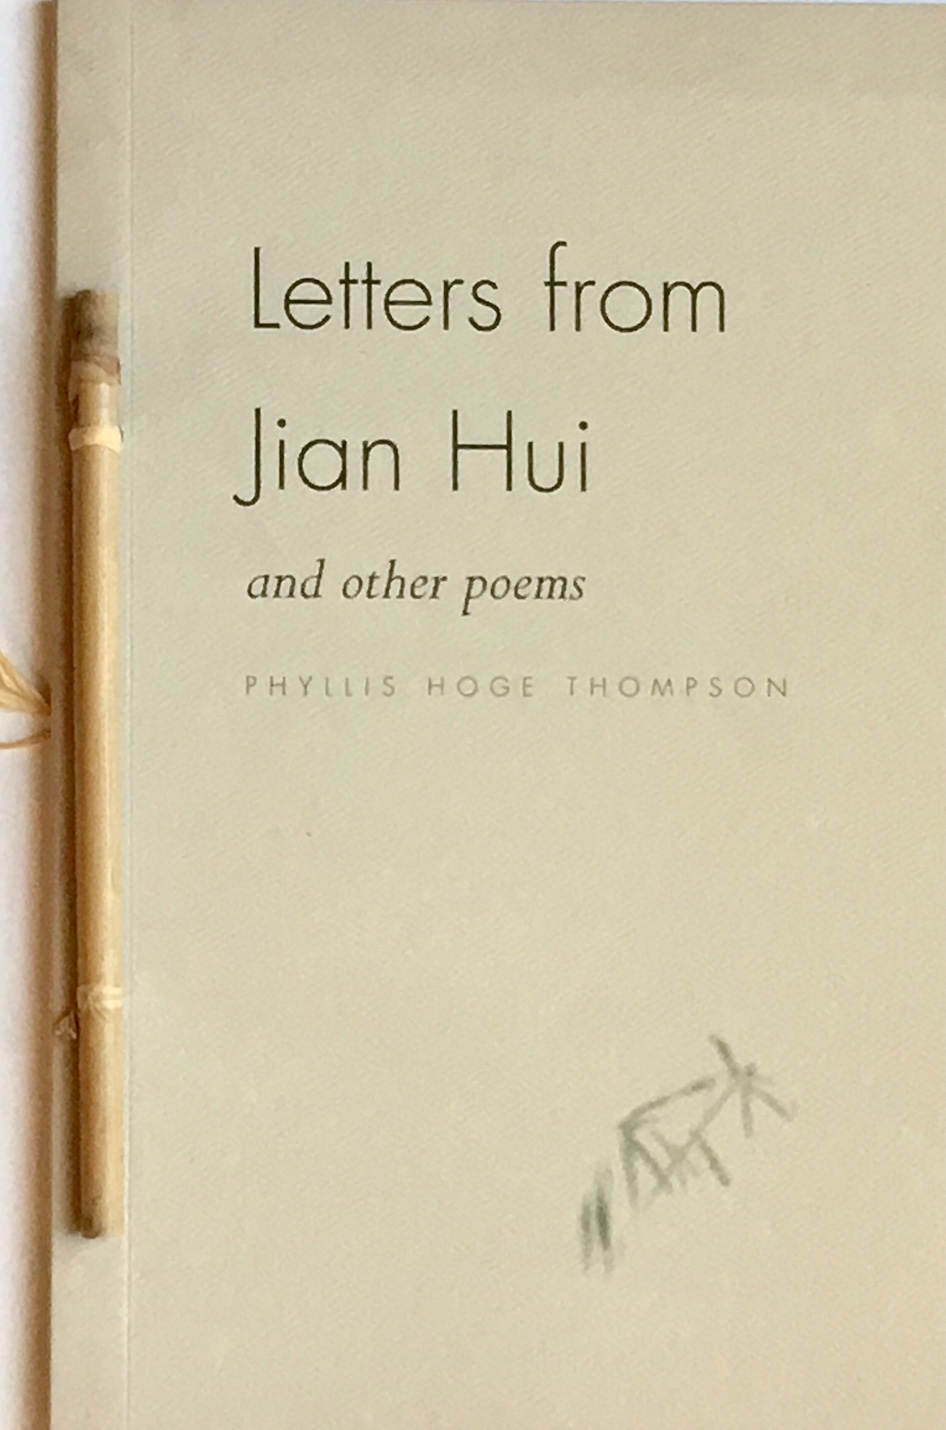 Letters from Jian Hui  by Phyllis Hoge Thompson